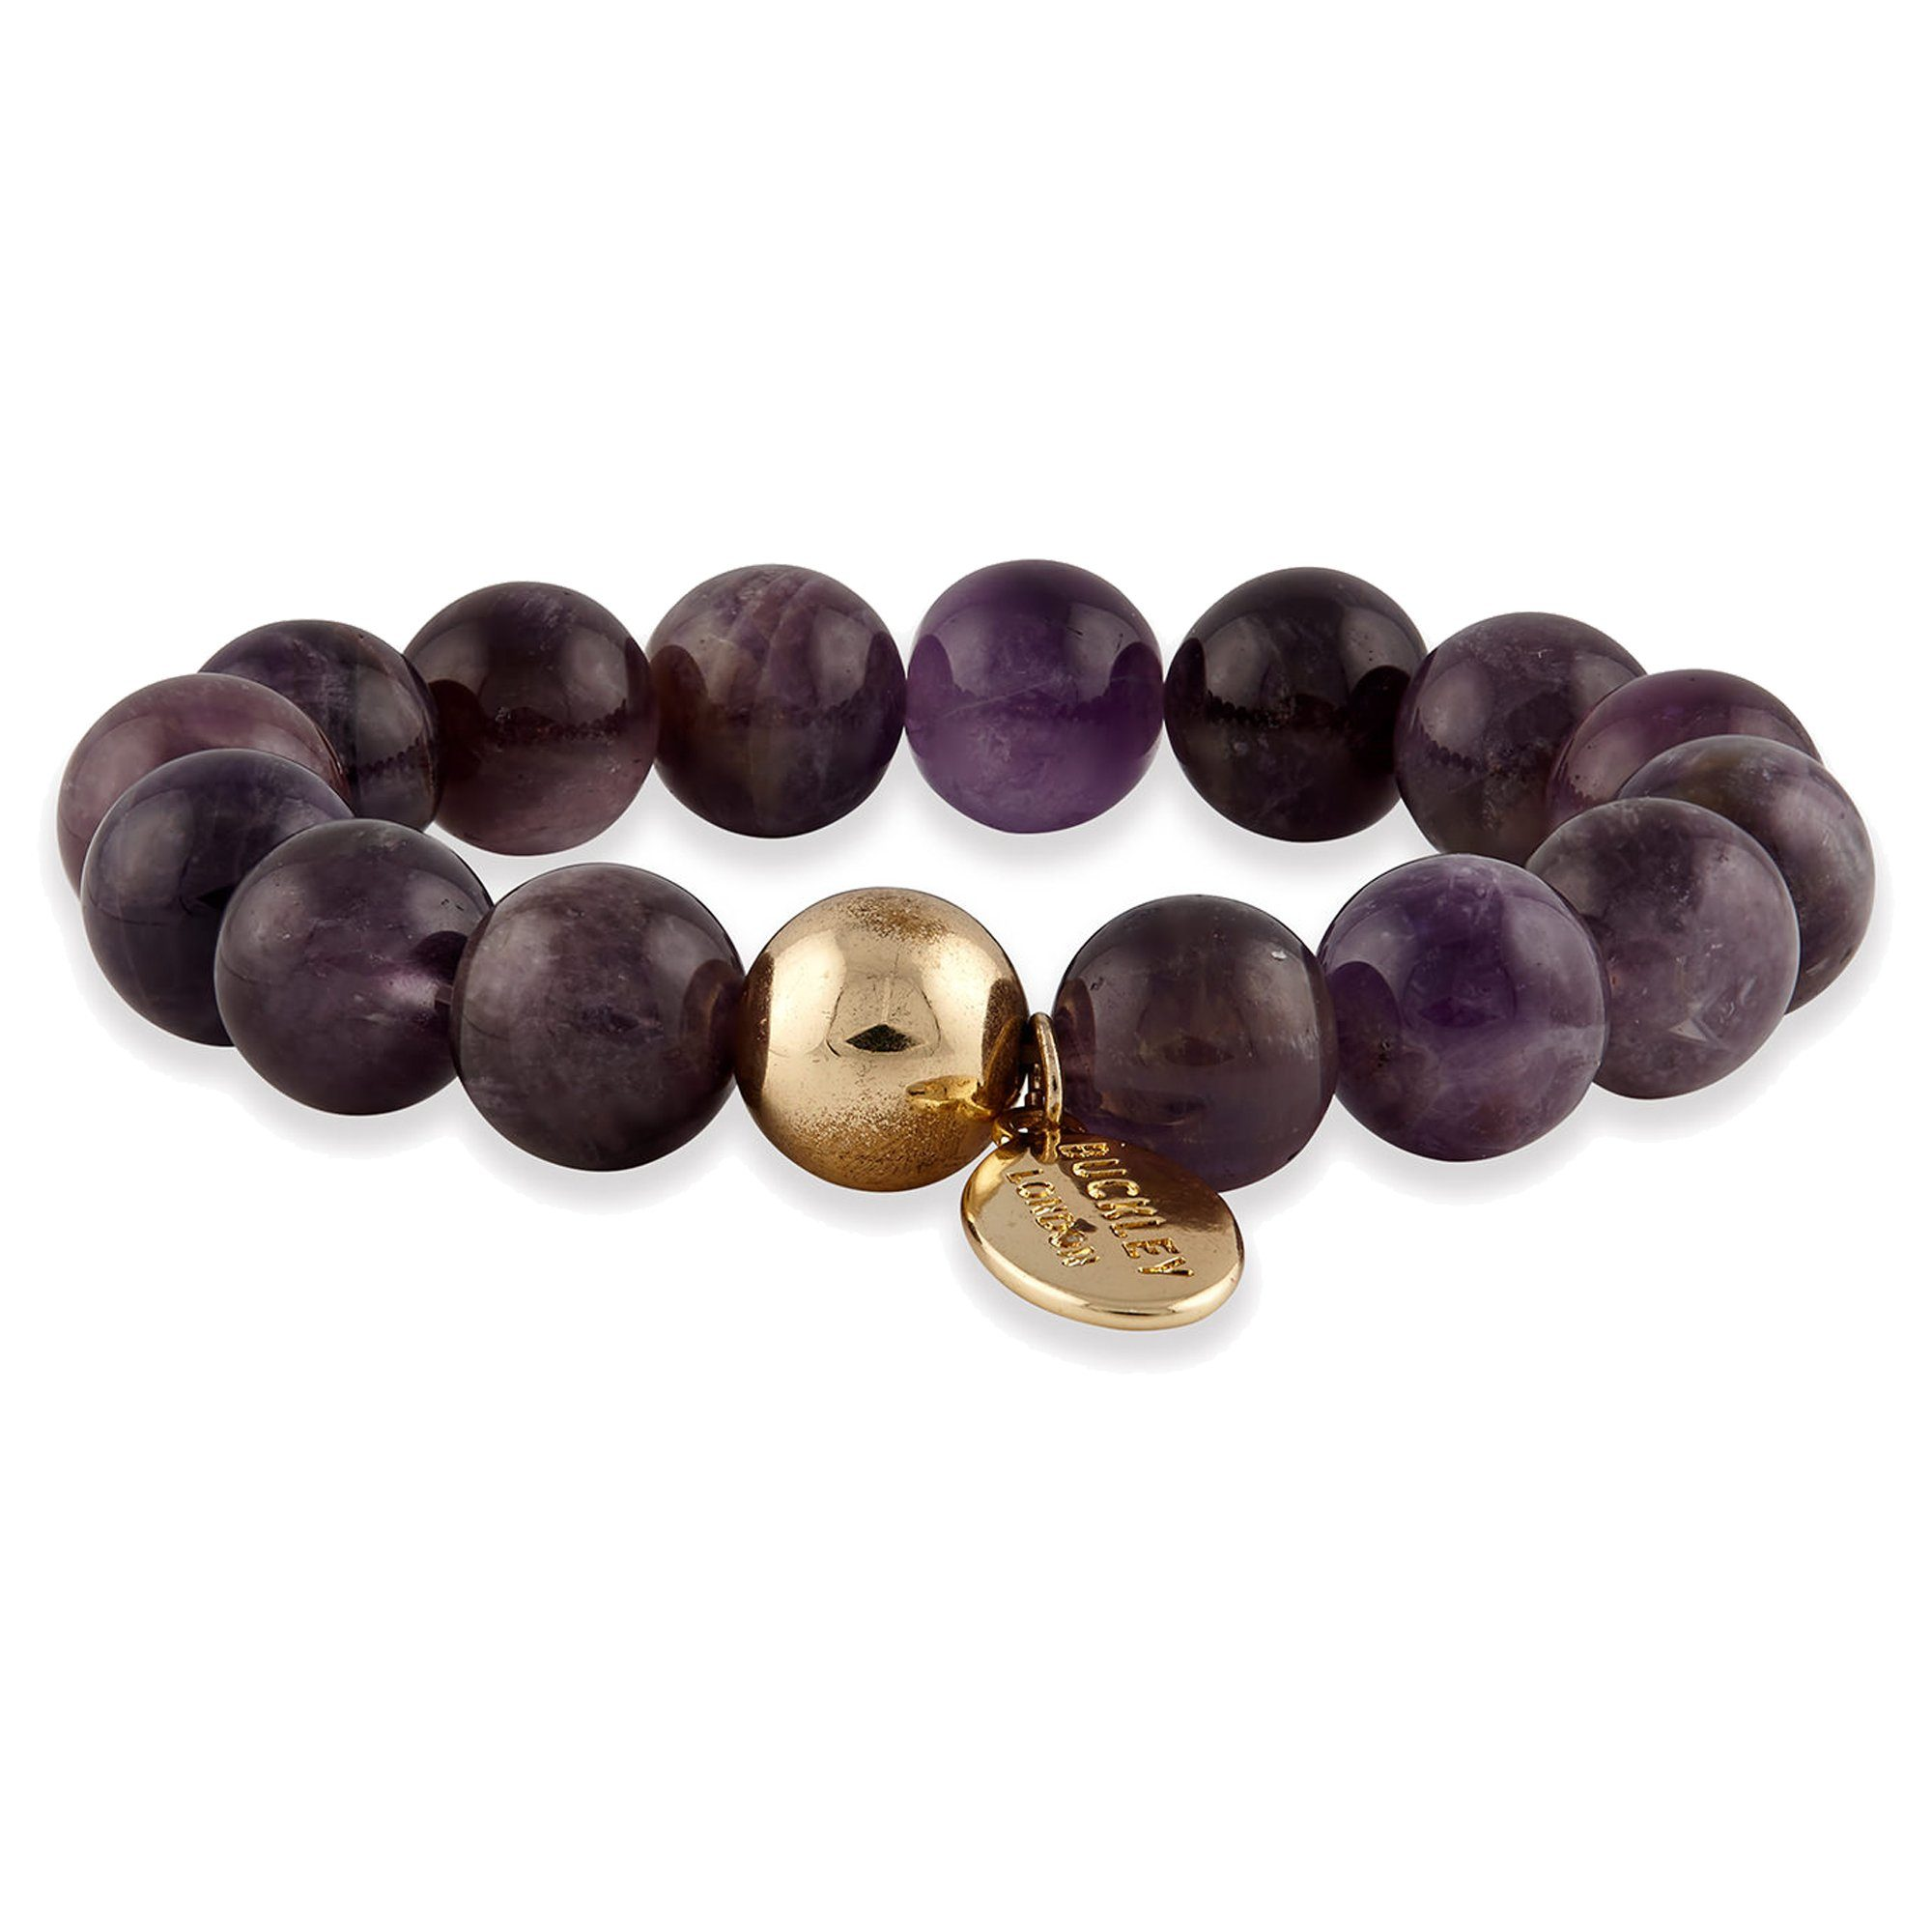 Buckley London Armschmuck »vergoldet mit Amethyst«